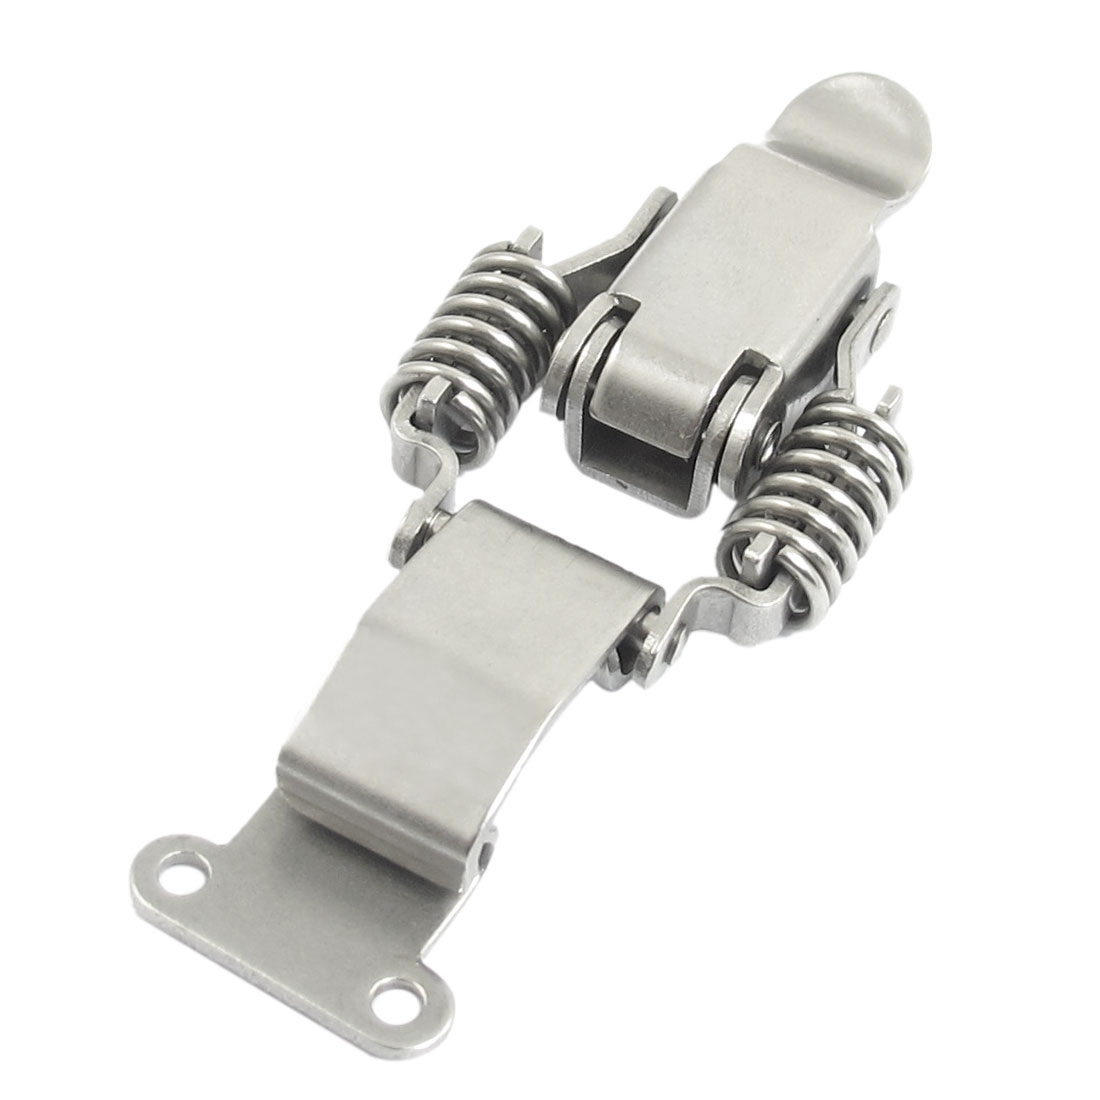 "3.3"" Compression Spring Loaded Stainless Steel Toggle Latch Catches"